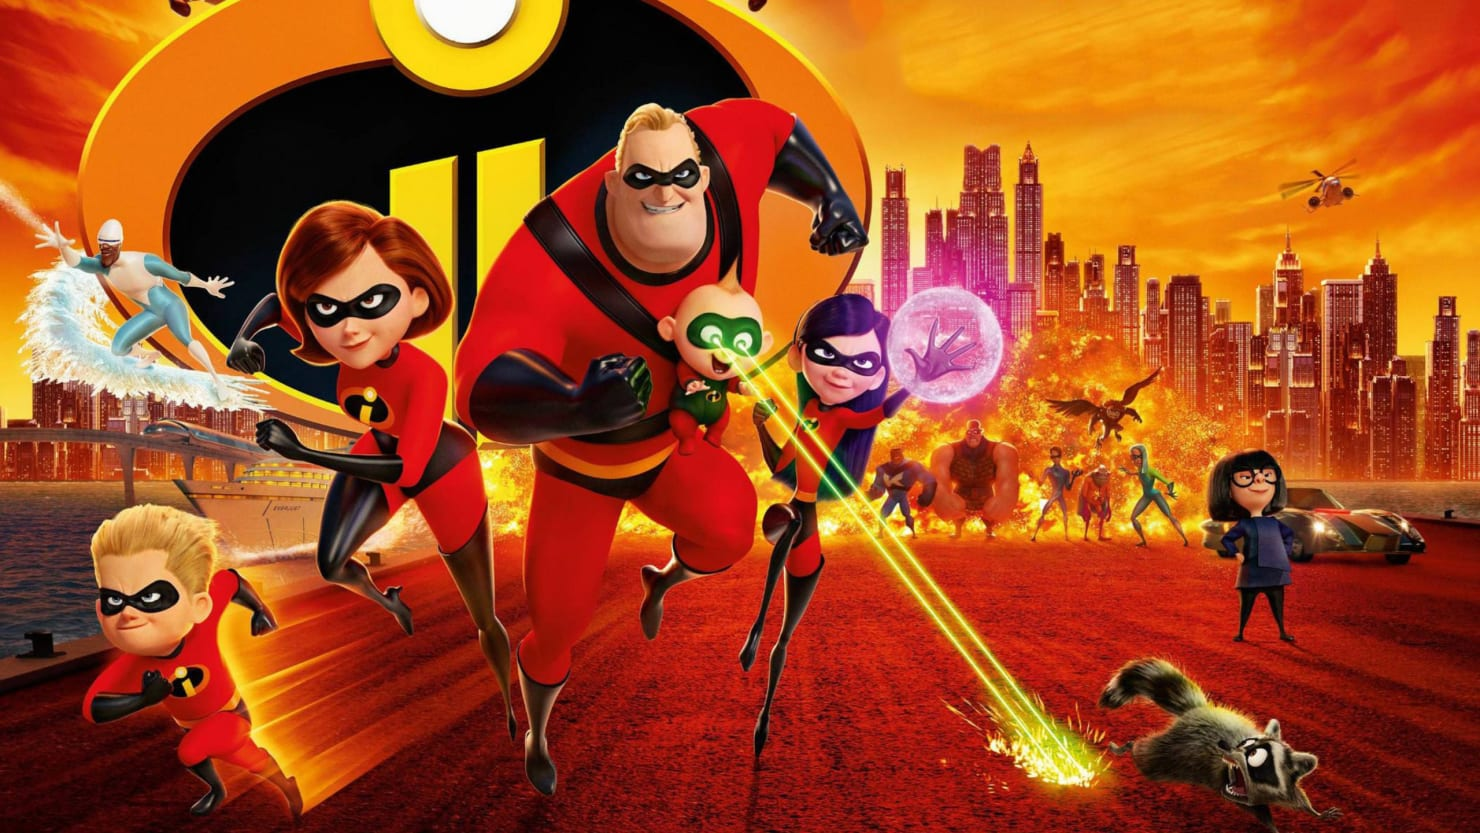 'incredibles 2' Is An Actionpacked Ode To Parenthood In